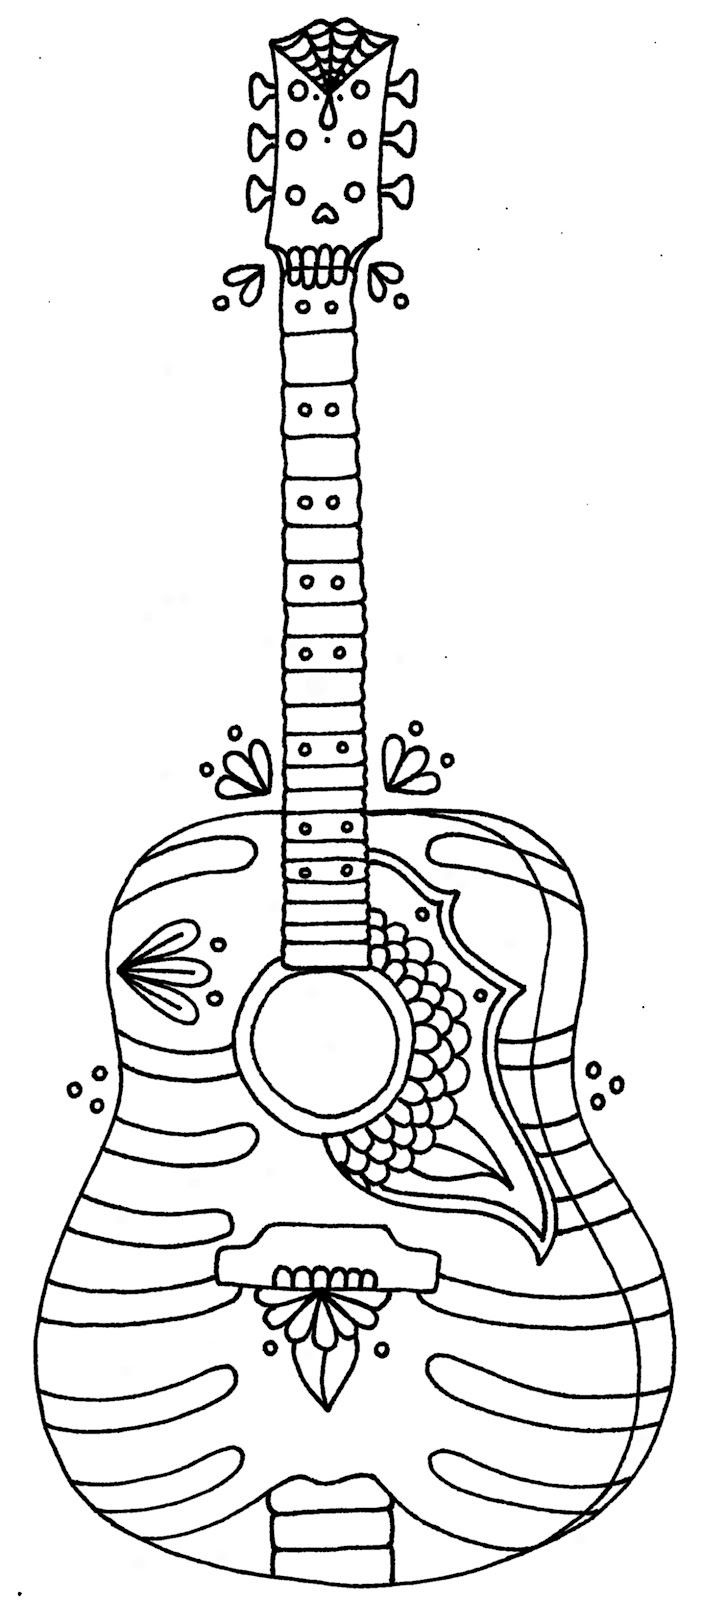 Guitar Coloring Page Full Guitar Colouring Pages Free Printable Coloring Page For Your Birijus Com